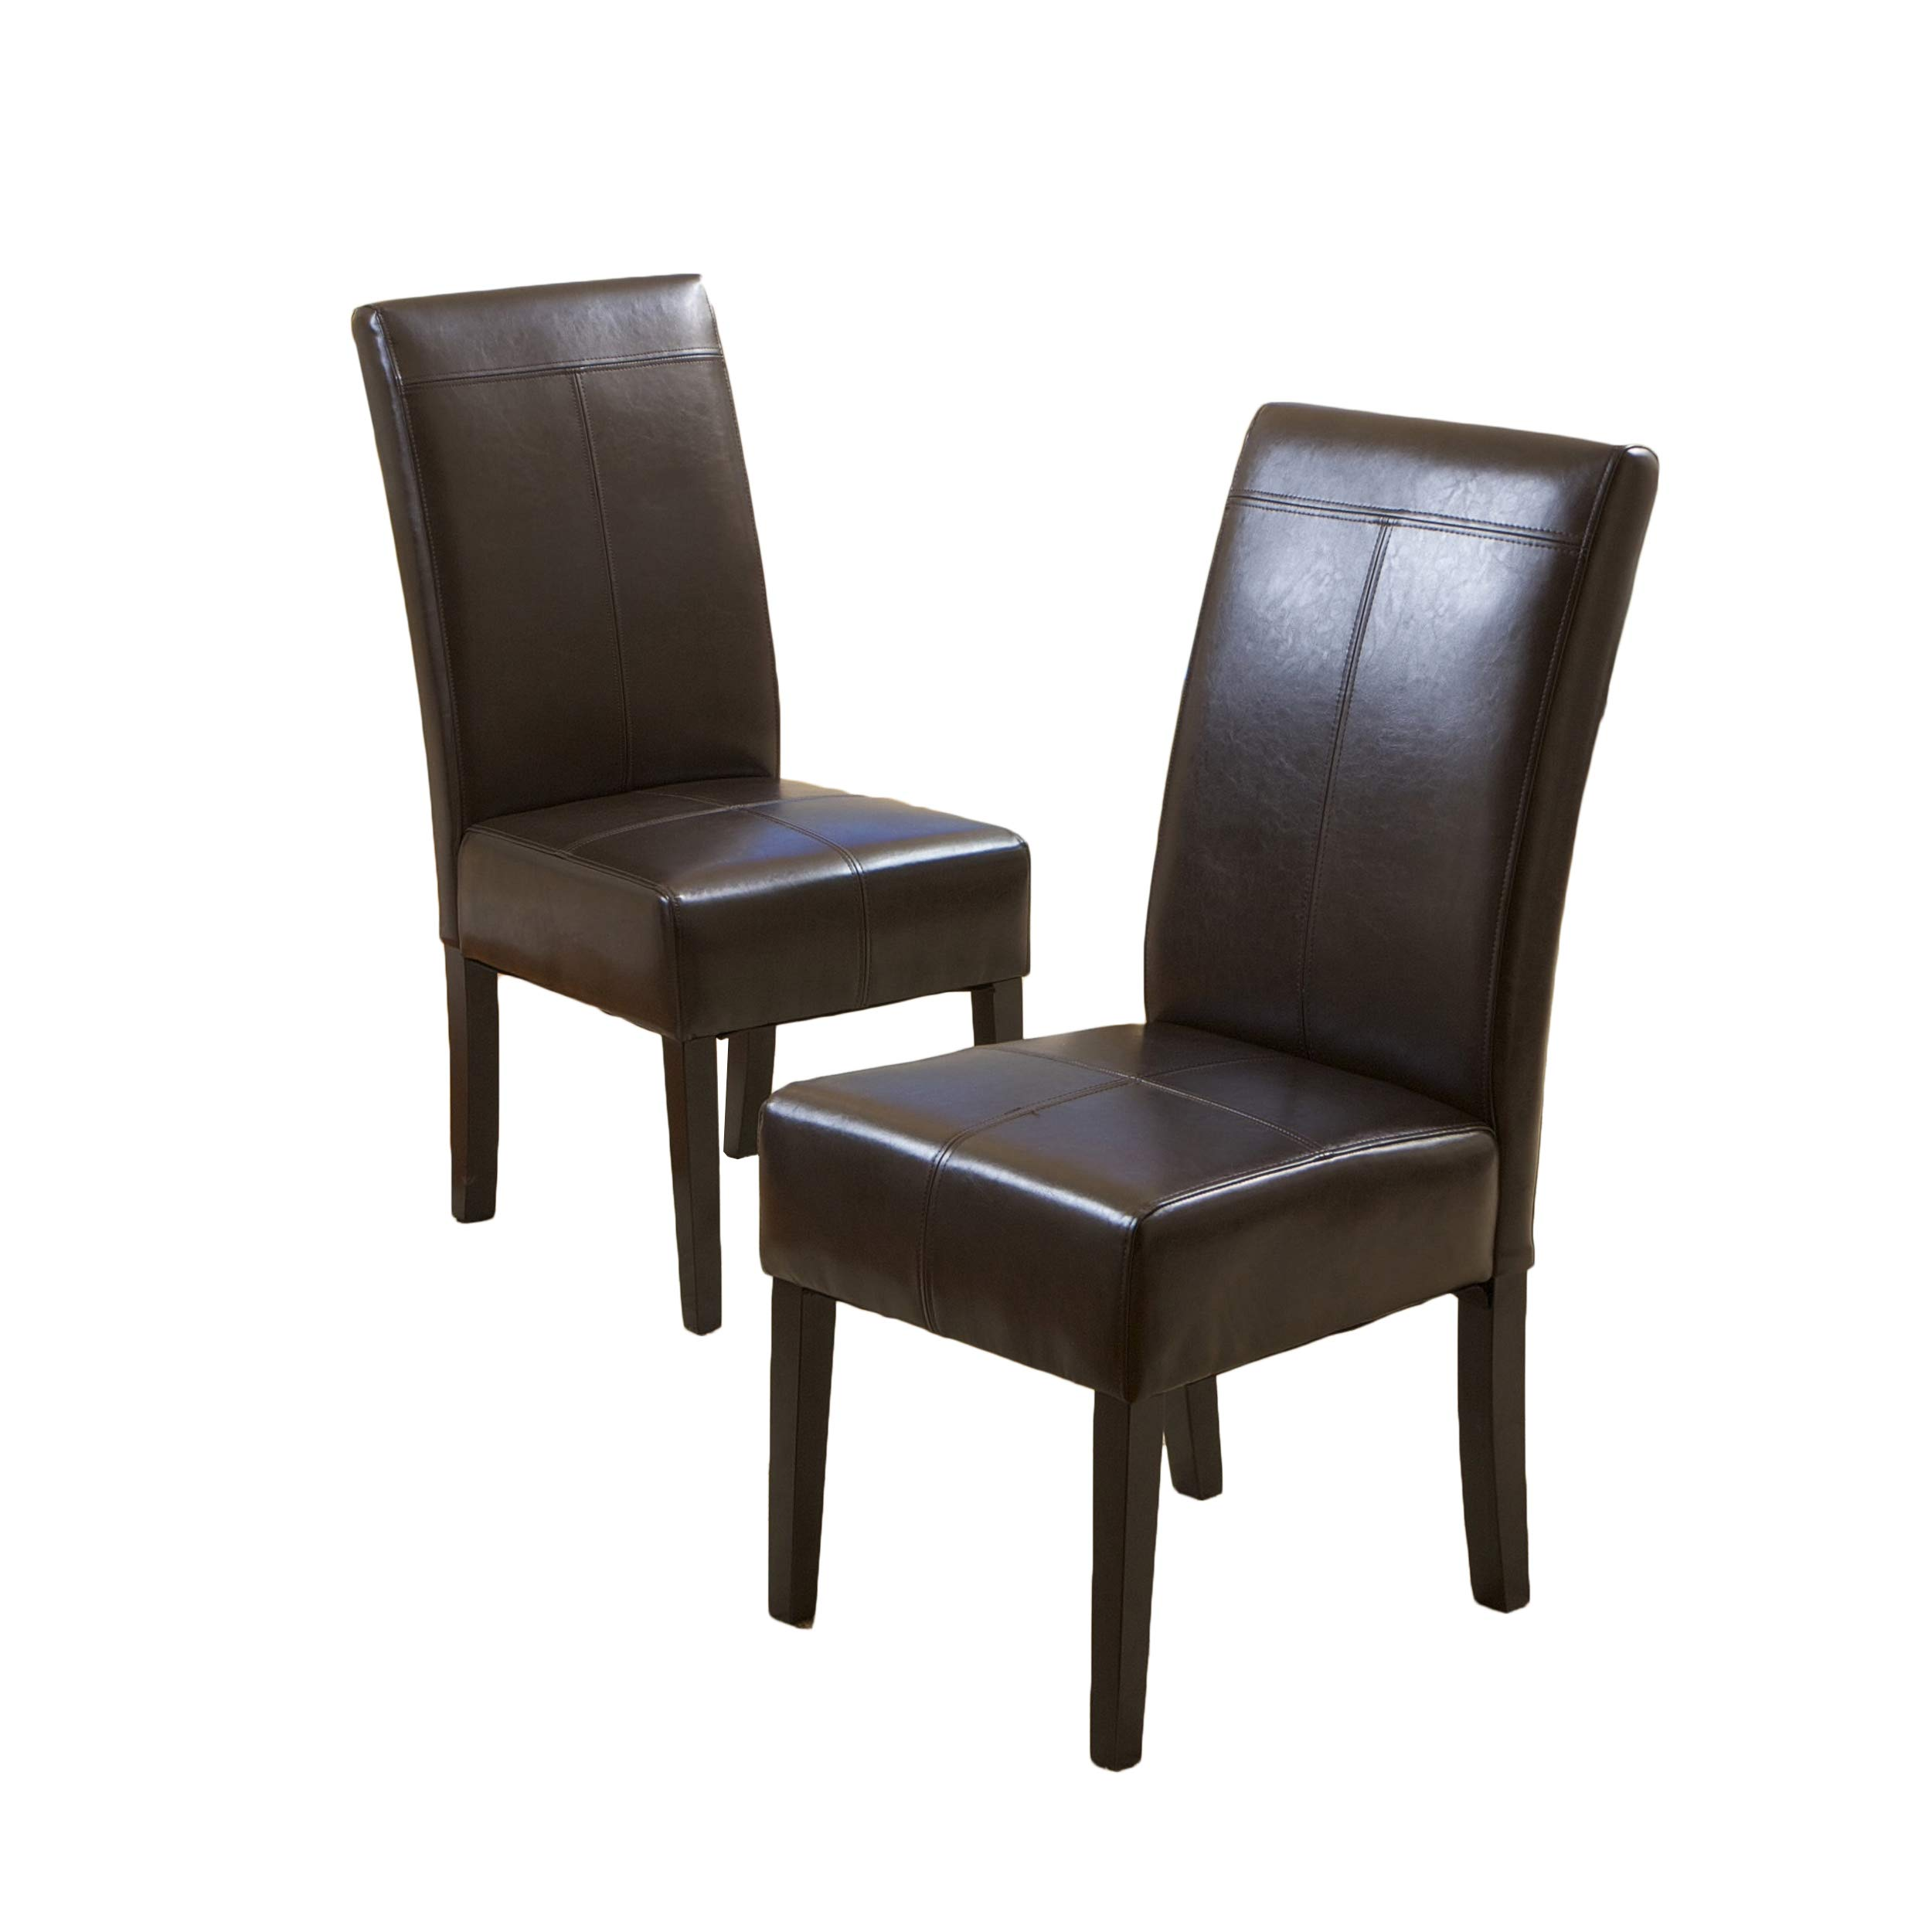 Best Selling Chocolate Brown T-Stitch Leather Dining Chair, 2-Pack by Best Selling